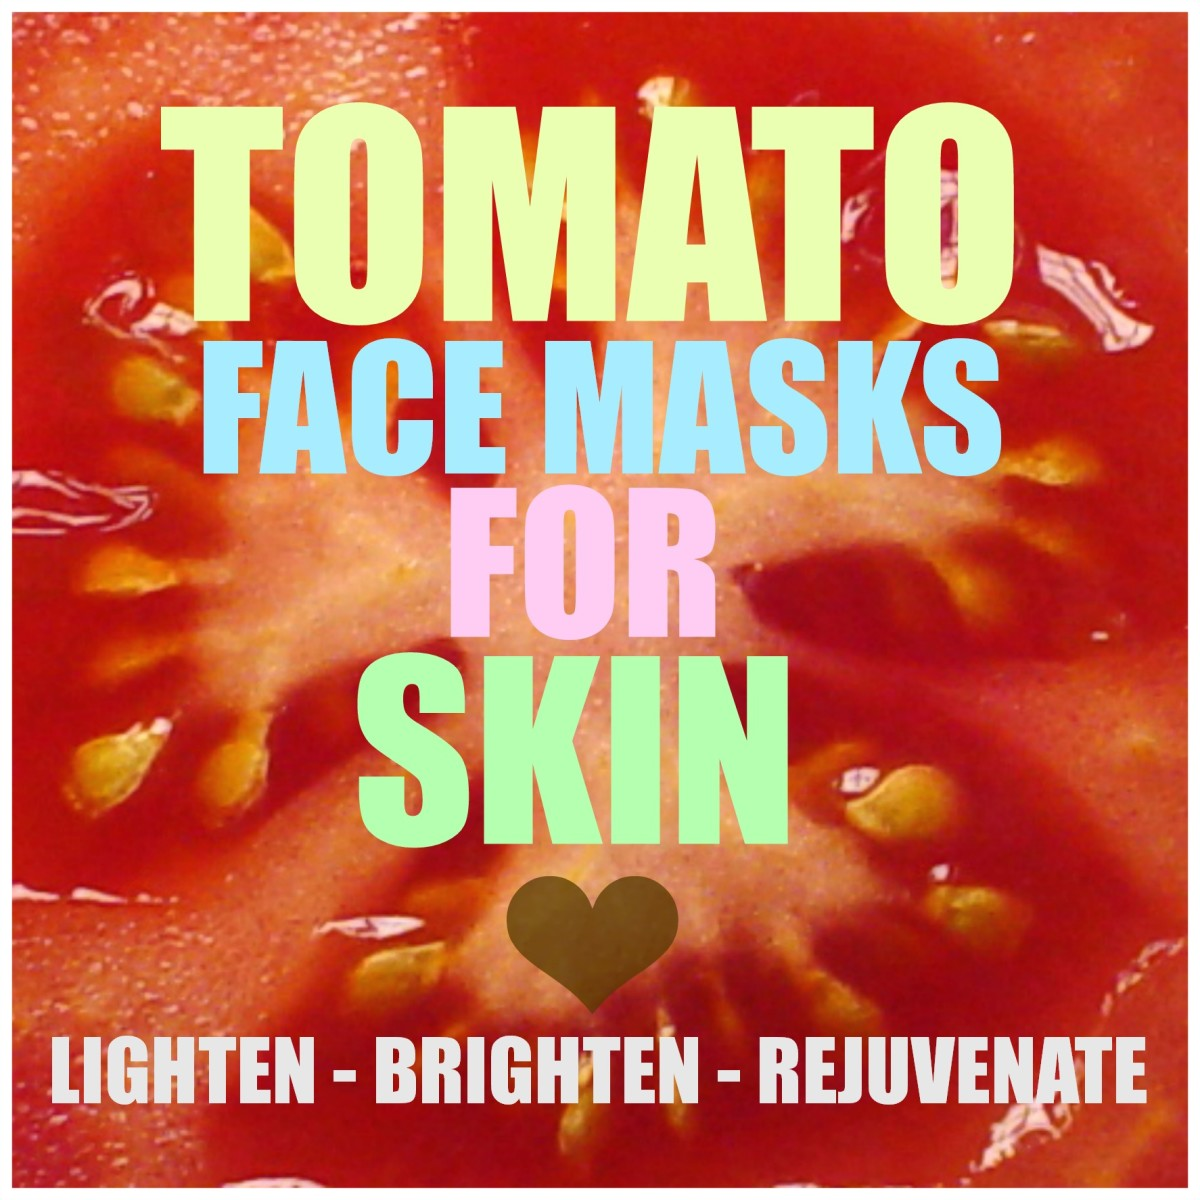 Looking for the best natural skin lightening ingredient without spending a dollar? Tomato face masks will leave your skin feeling rosy, radiant and brighter than ever before!